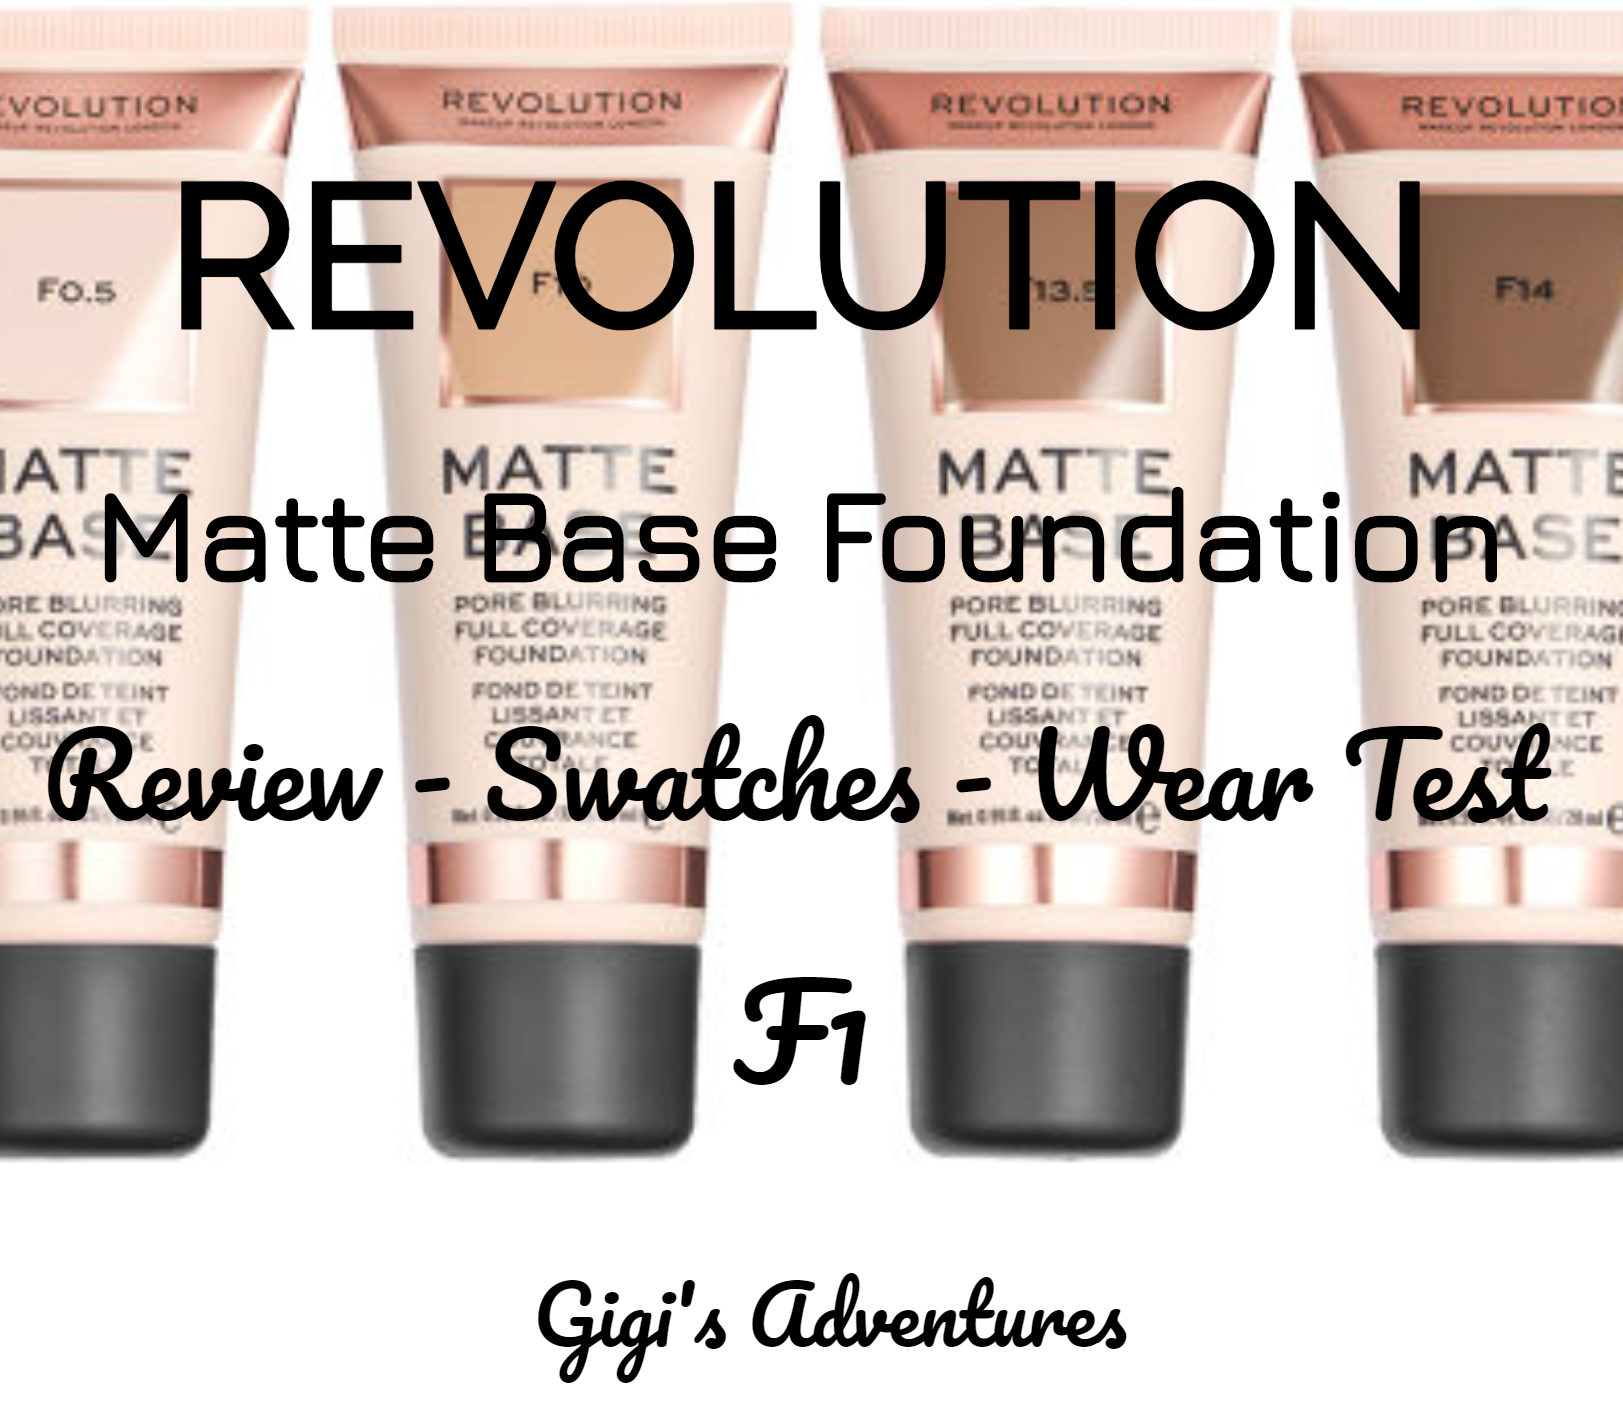 Revolution Matte Base Foundation F1 Review My New Favorite